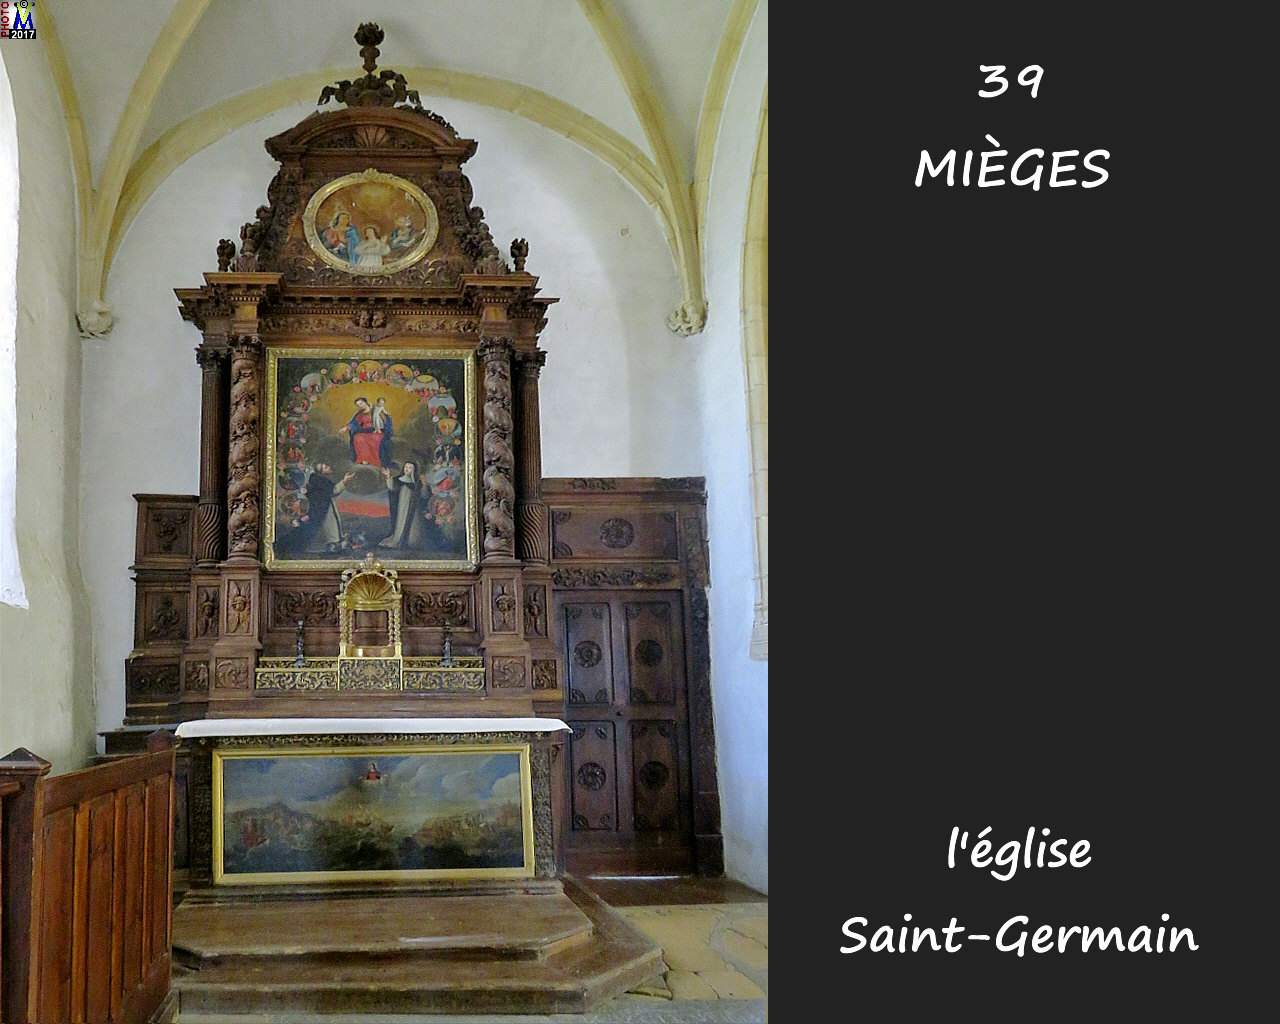 39MIEGES_eglise_222.jpg